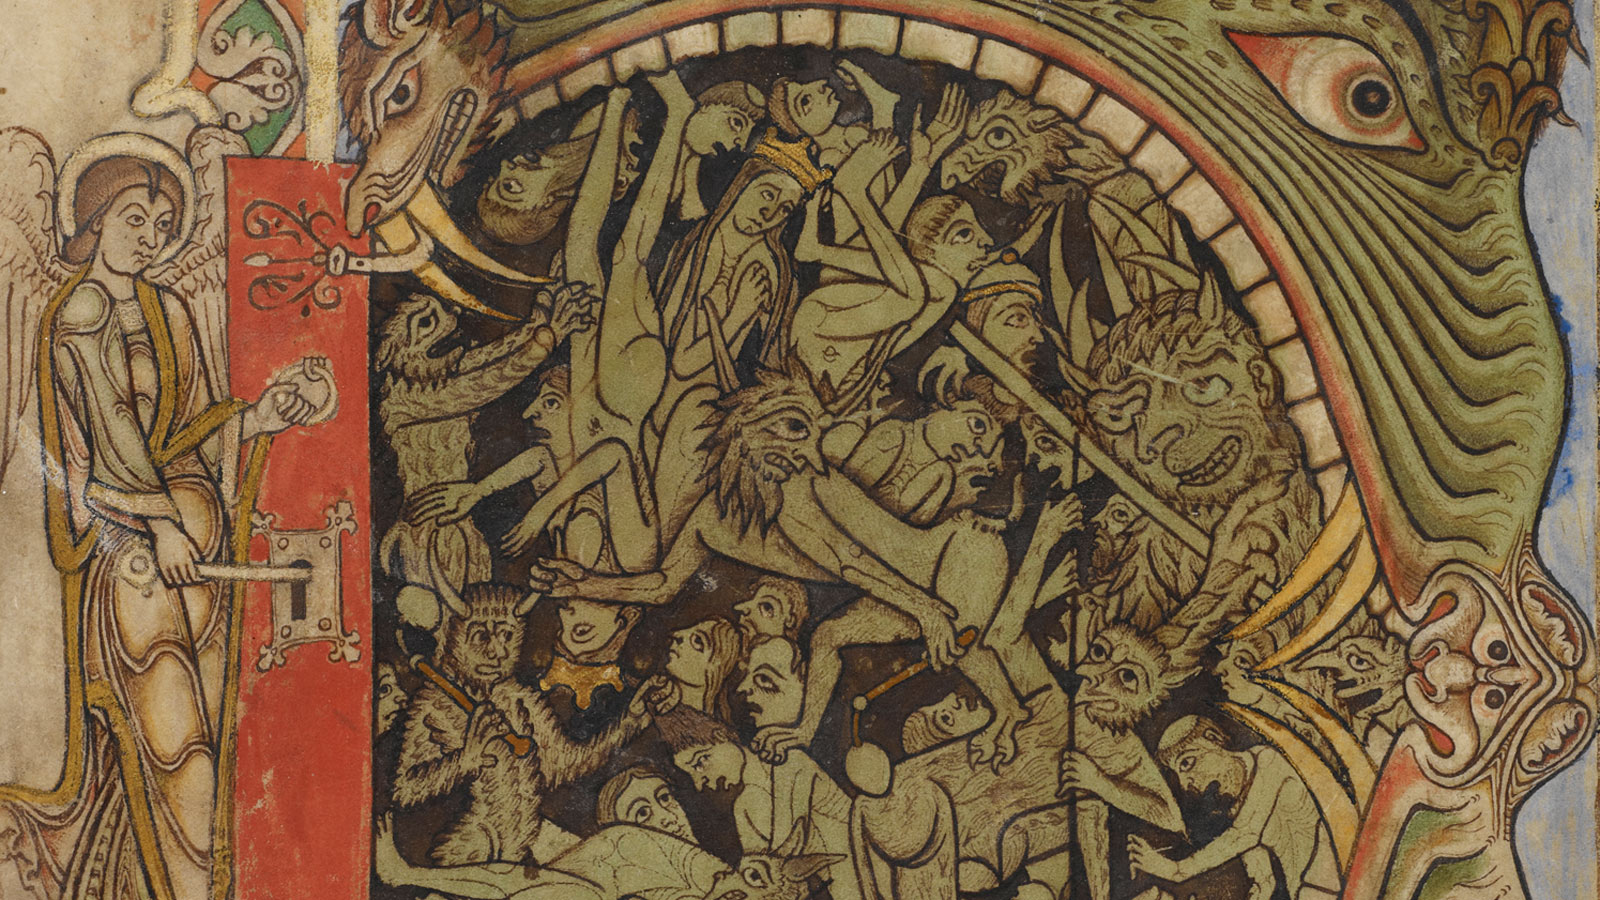 Medieval monsters: from the mystical to the demonic